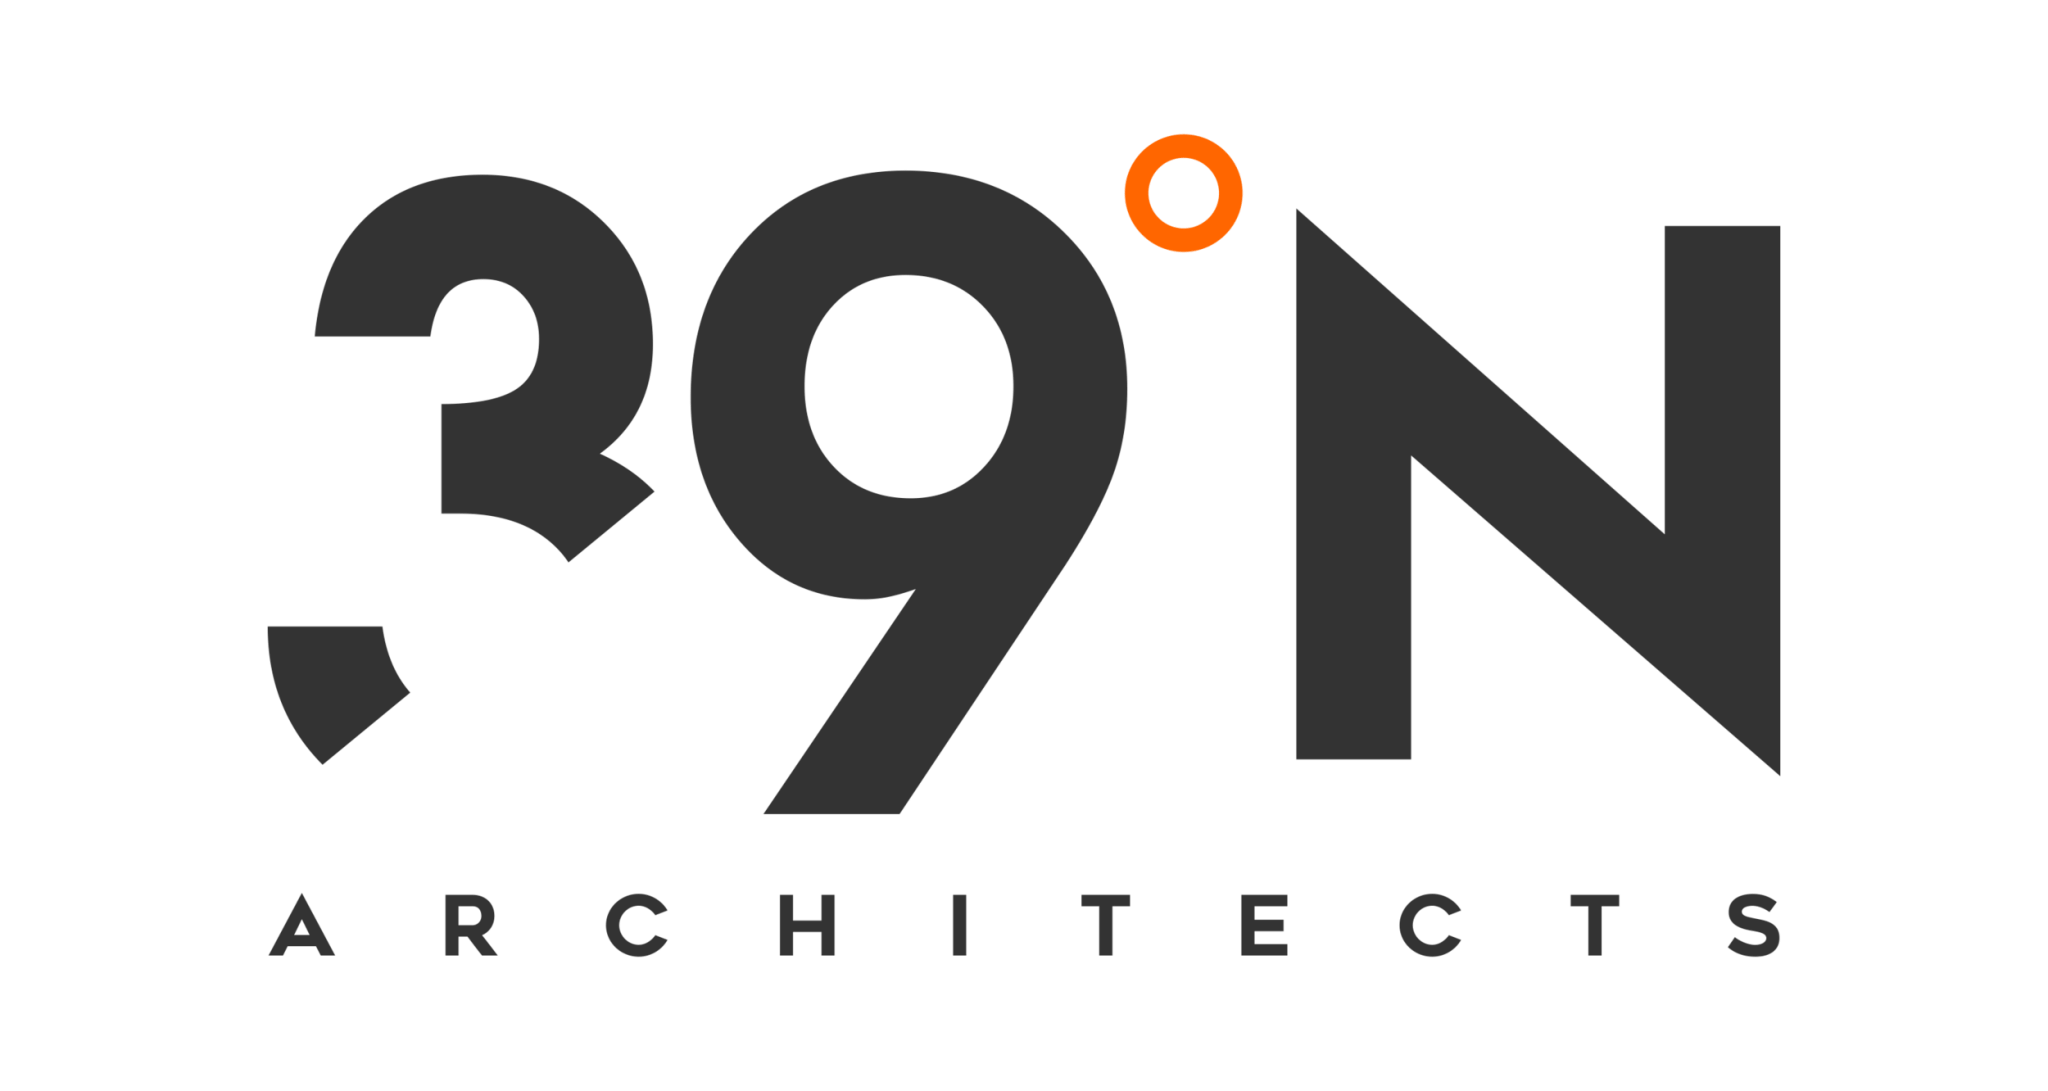 39° North Architects